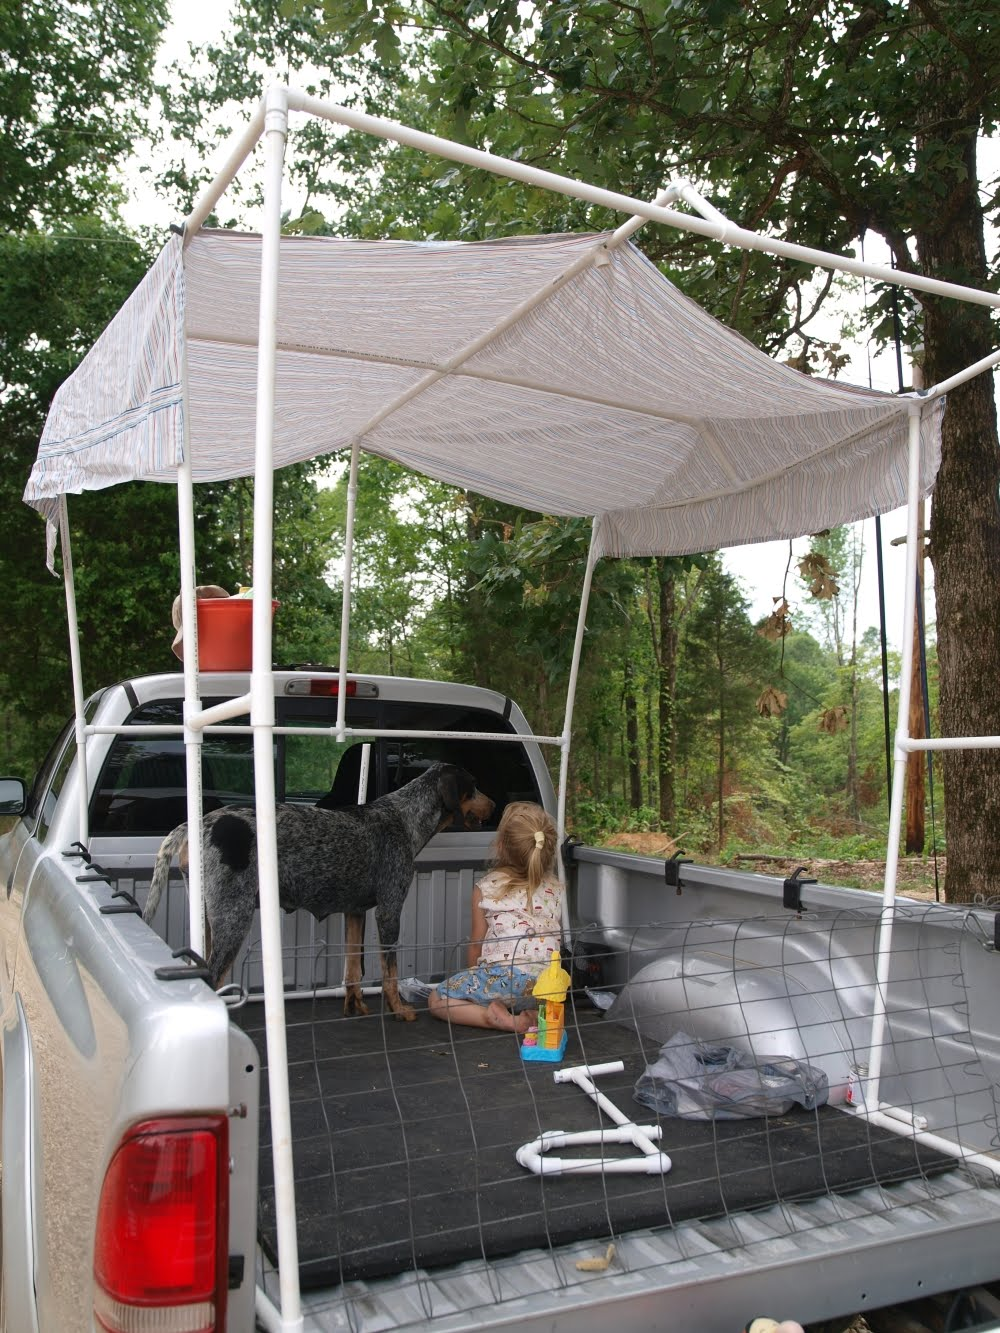 It is the last day of my vacation. We got a lot done this week. This is what I made today a PVC tent to go over the top of the truck bed ... & KnitOwl: PVC tent and end of vacation